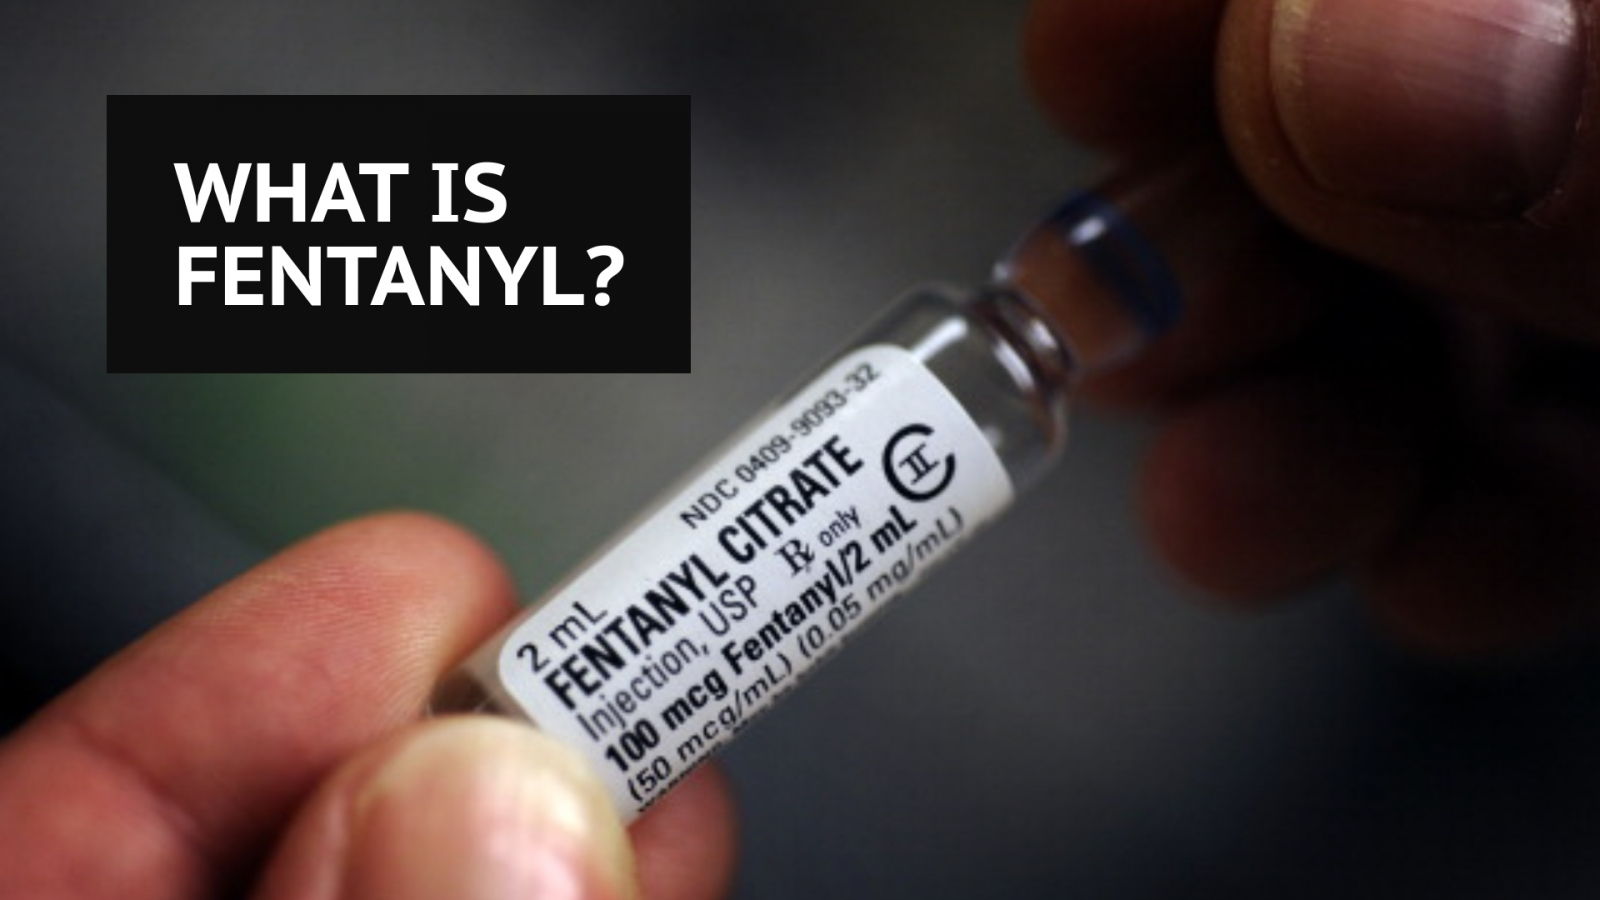 what-is-fentanyl-the-opioid-drug-50-times-stronger-than-heroin